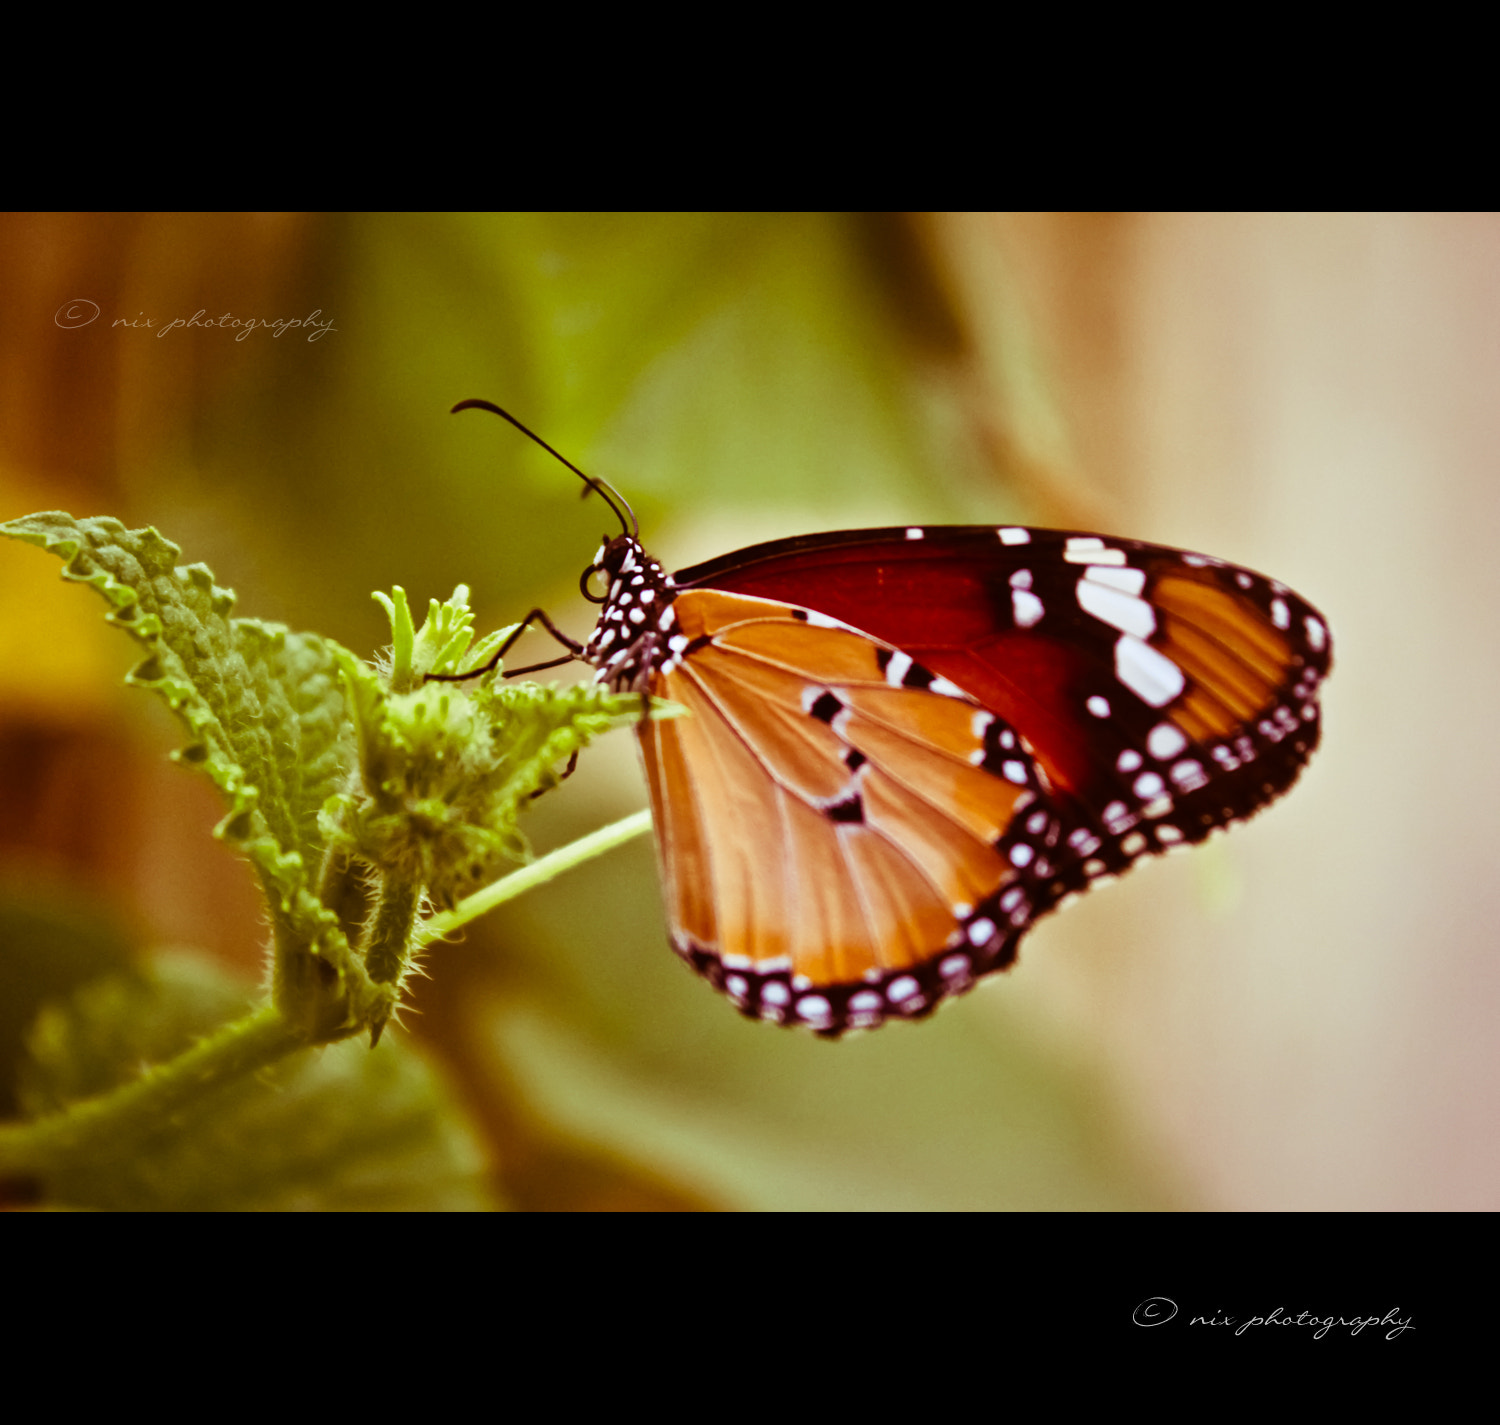 Photograph B'fly by Nithesh Kanth on 500px